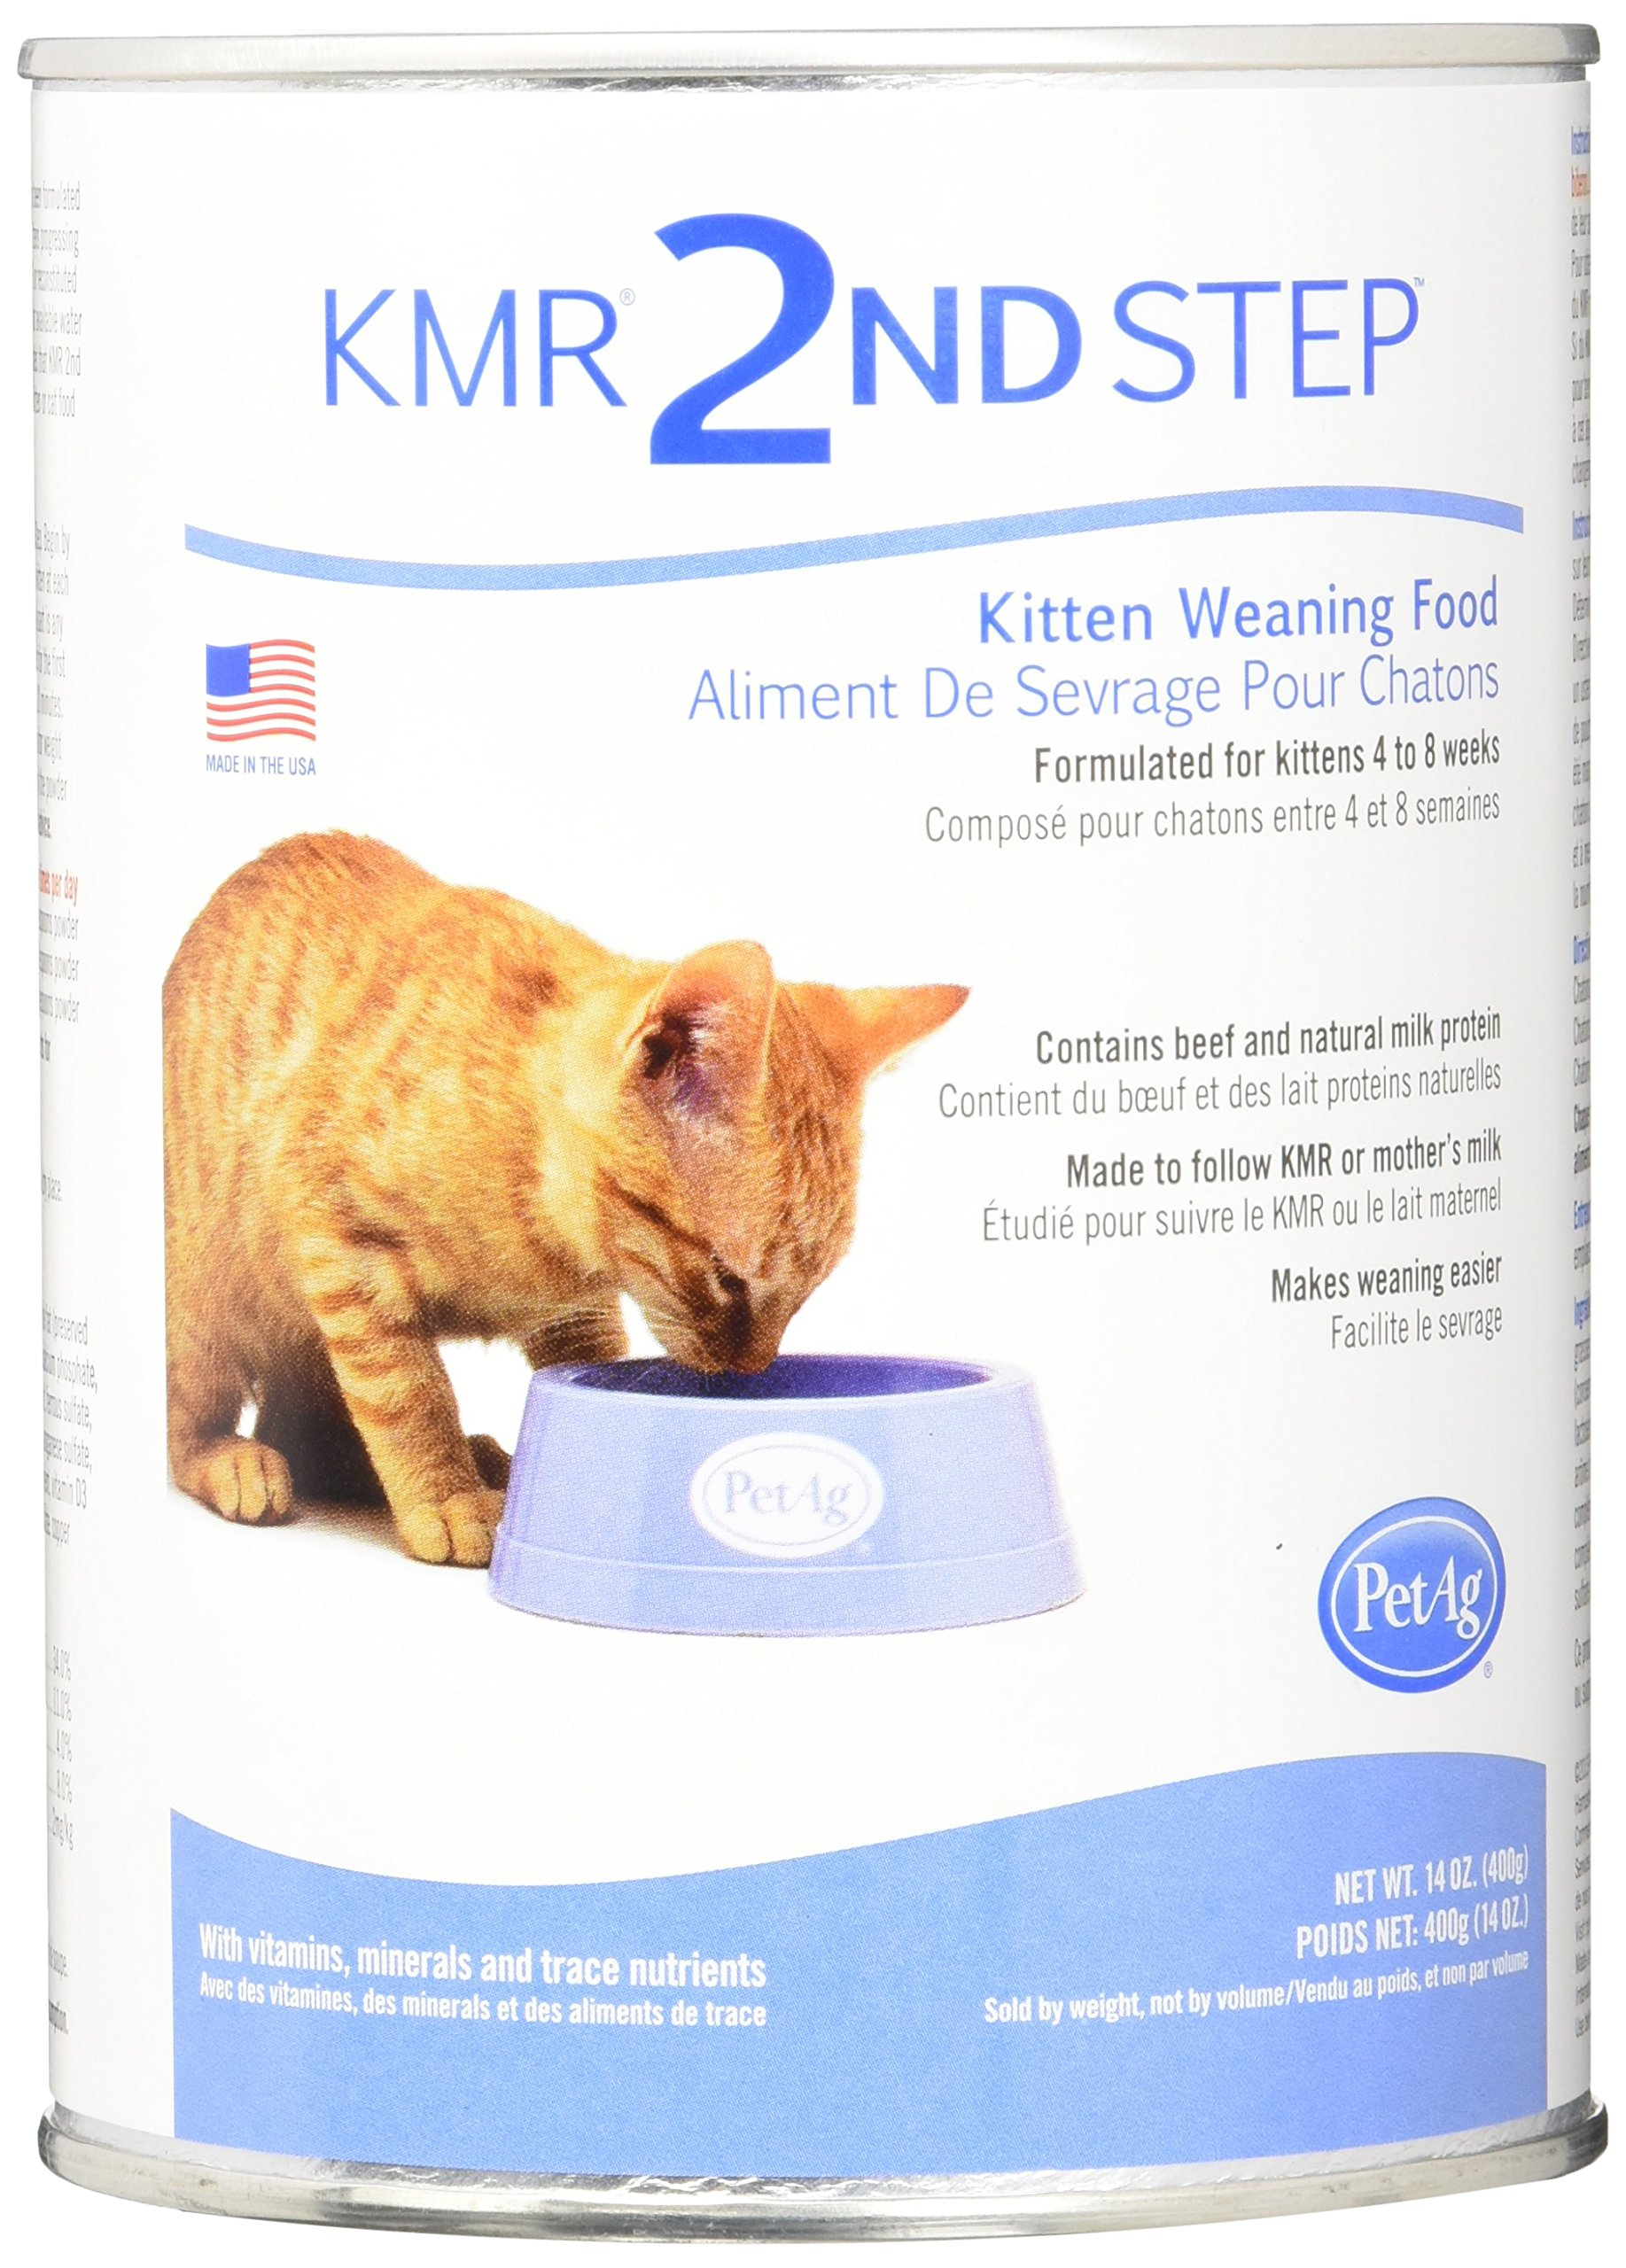 PetAg KMR 2nd Step Kitten Weaning Food 14oz 1